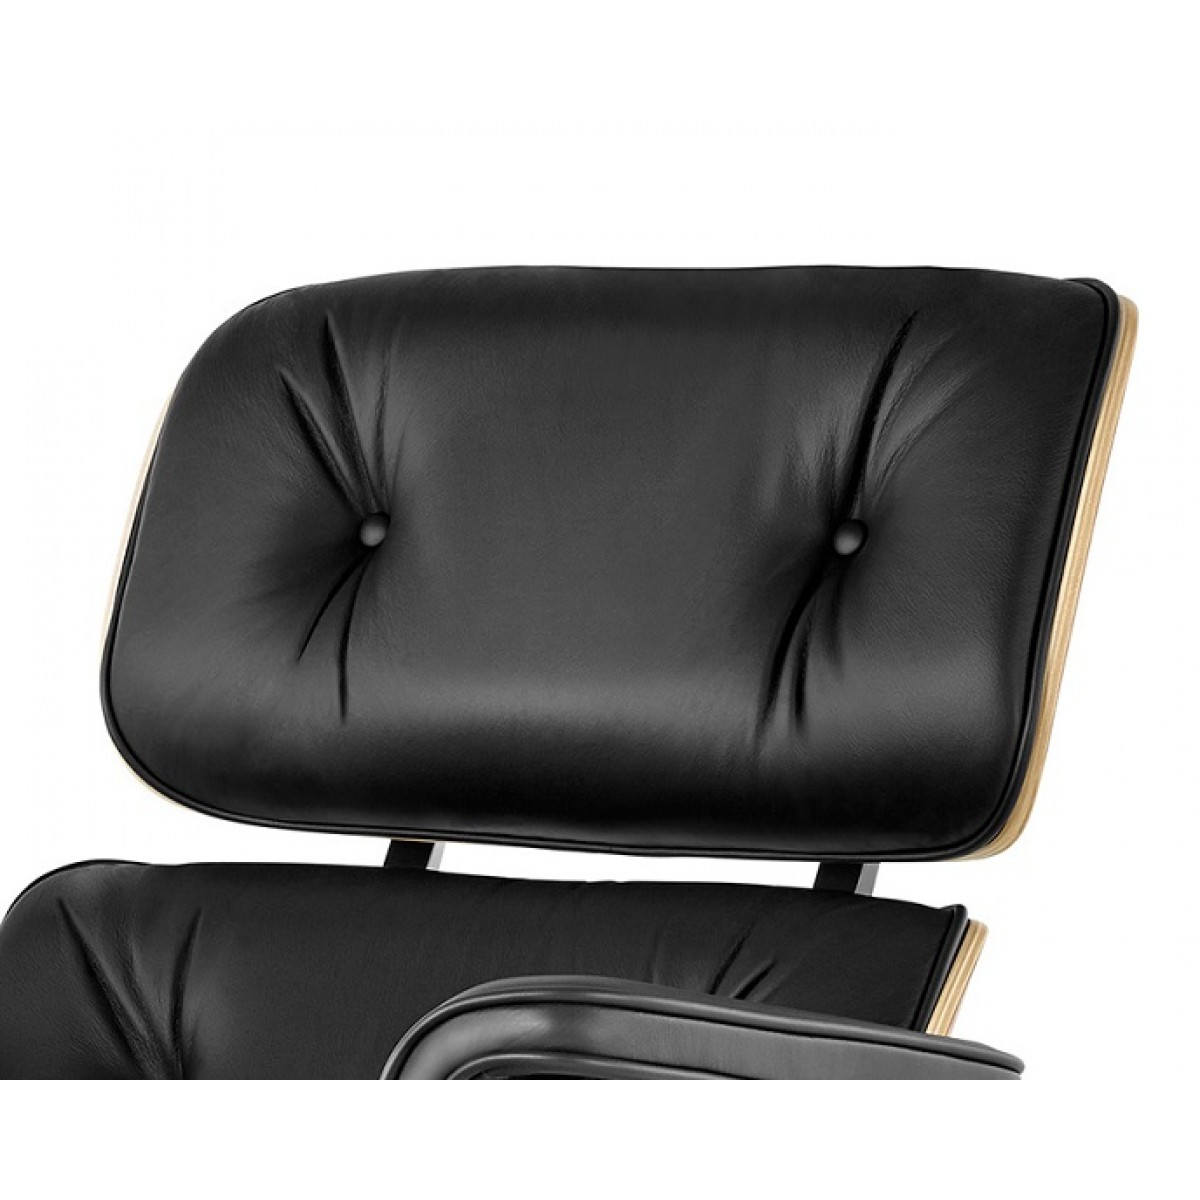 panton chair review dining room end chairs eames style lounge and ottoman black leather oak plywood